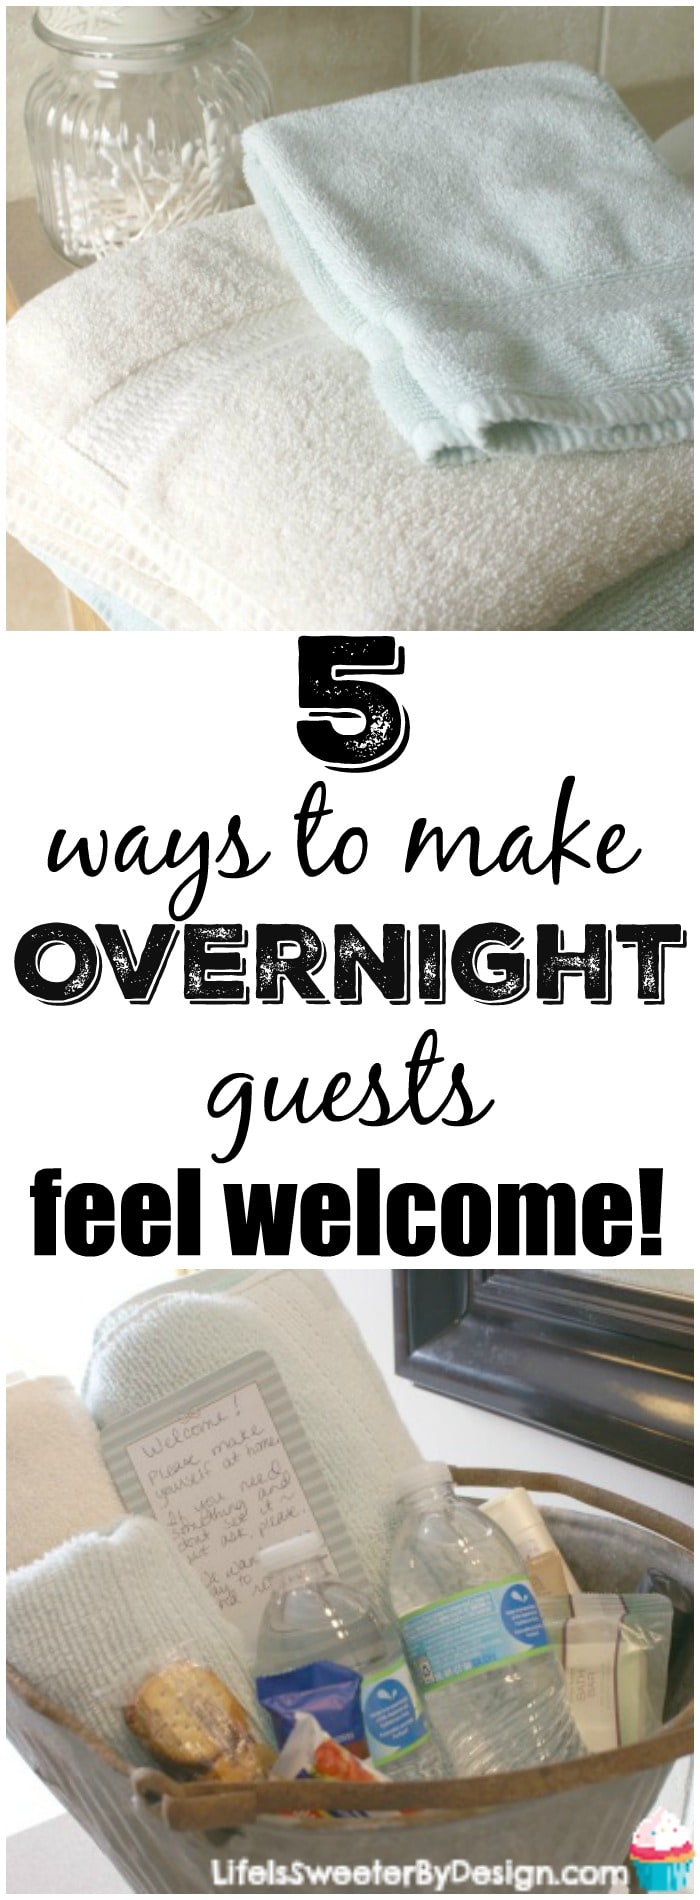 5-ways-to-make-overnight-guests-feel-welcome-pin